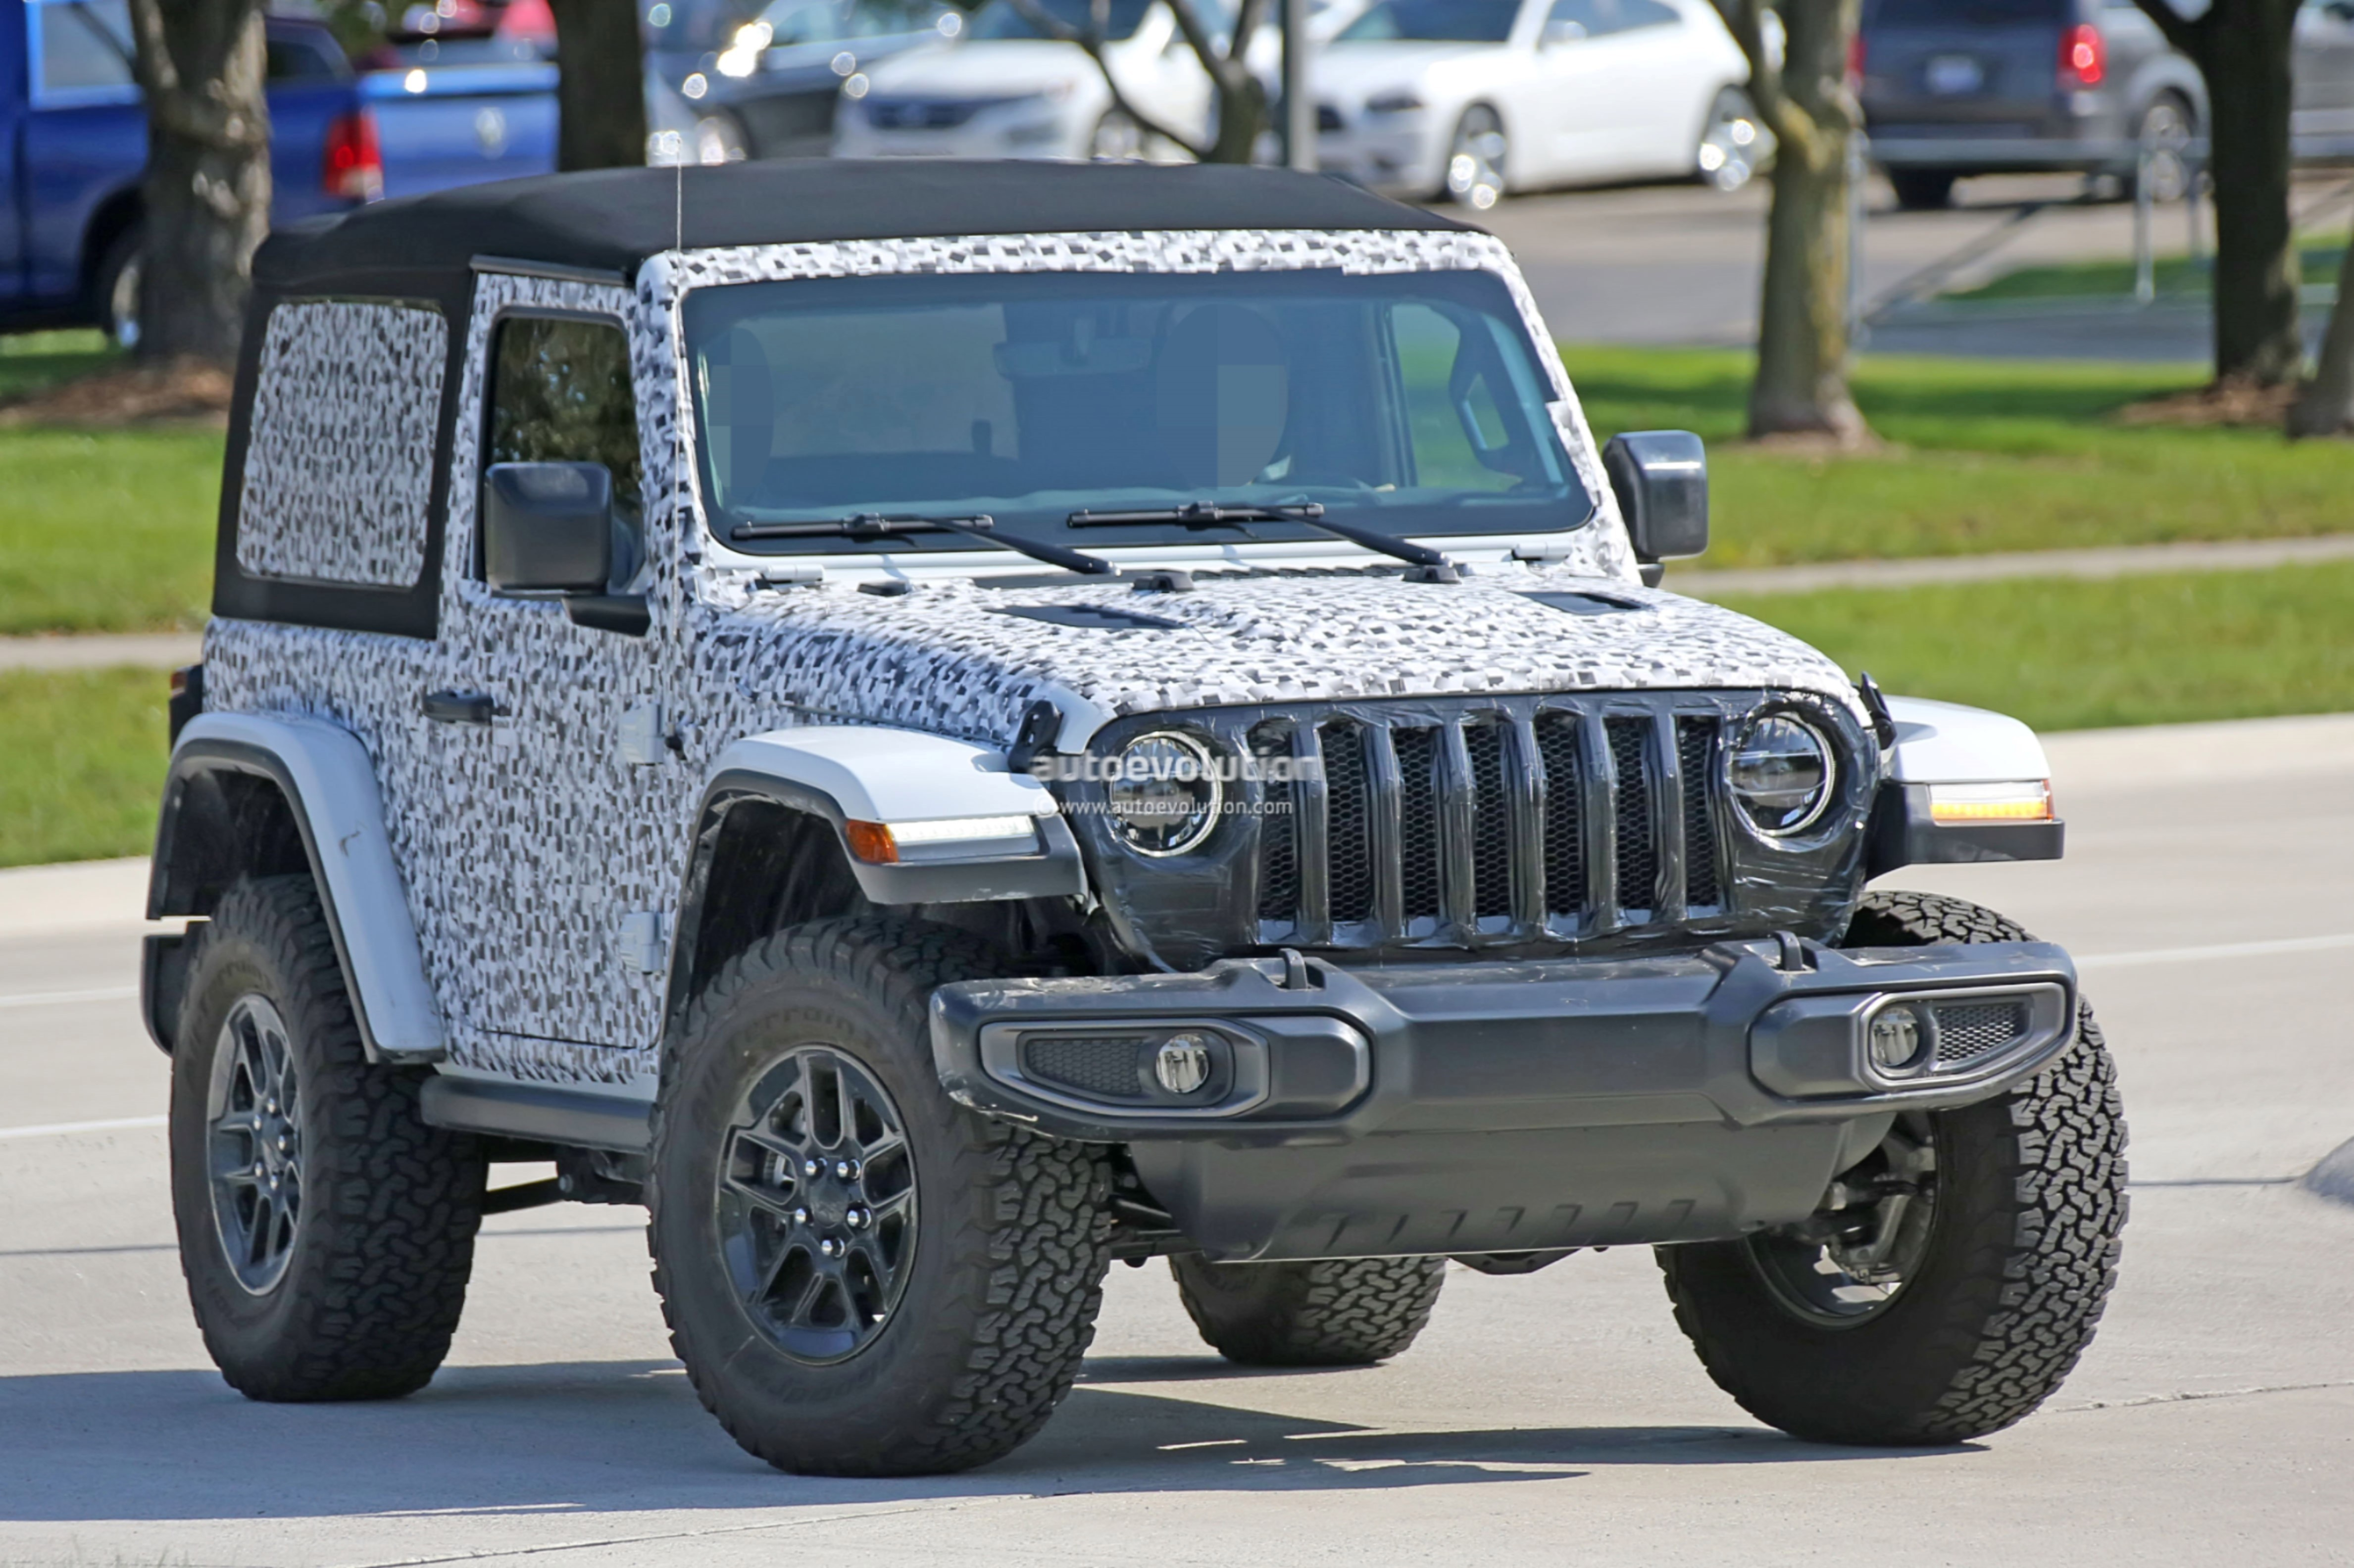 to modern more jeep lines spied can well and new photos current of as grille clearly flow clean the soft wrangler newest be door top doors jl which jk have a off in seen aerodynamic seems shows pics spy than reveals headlights